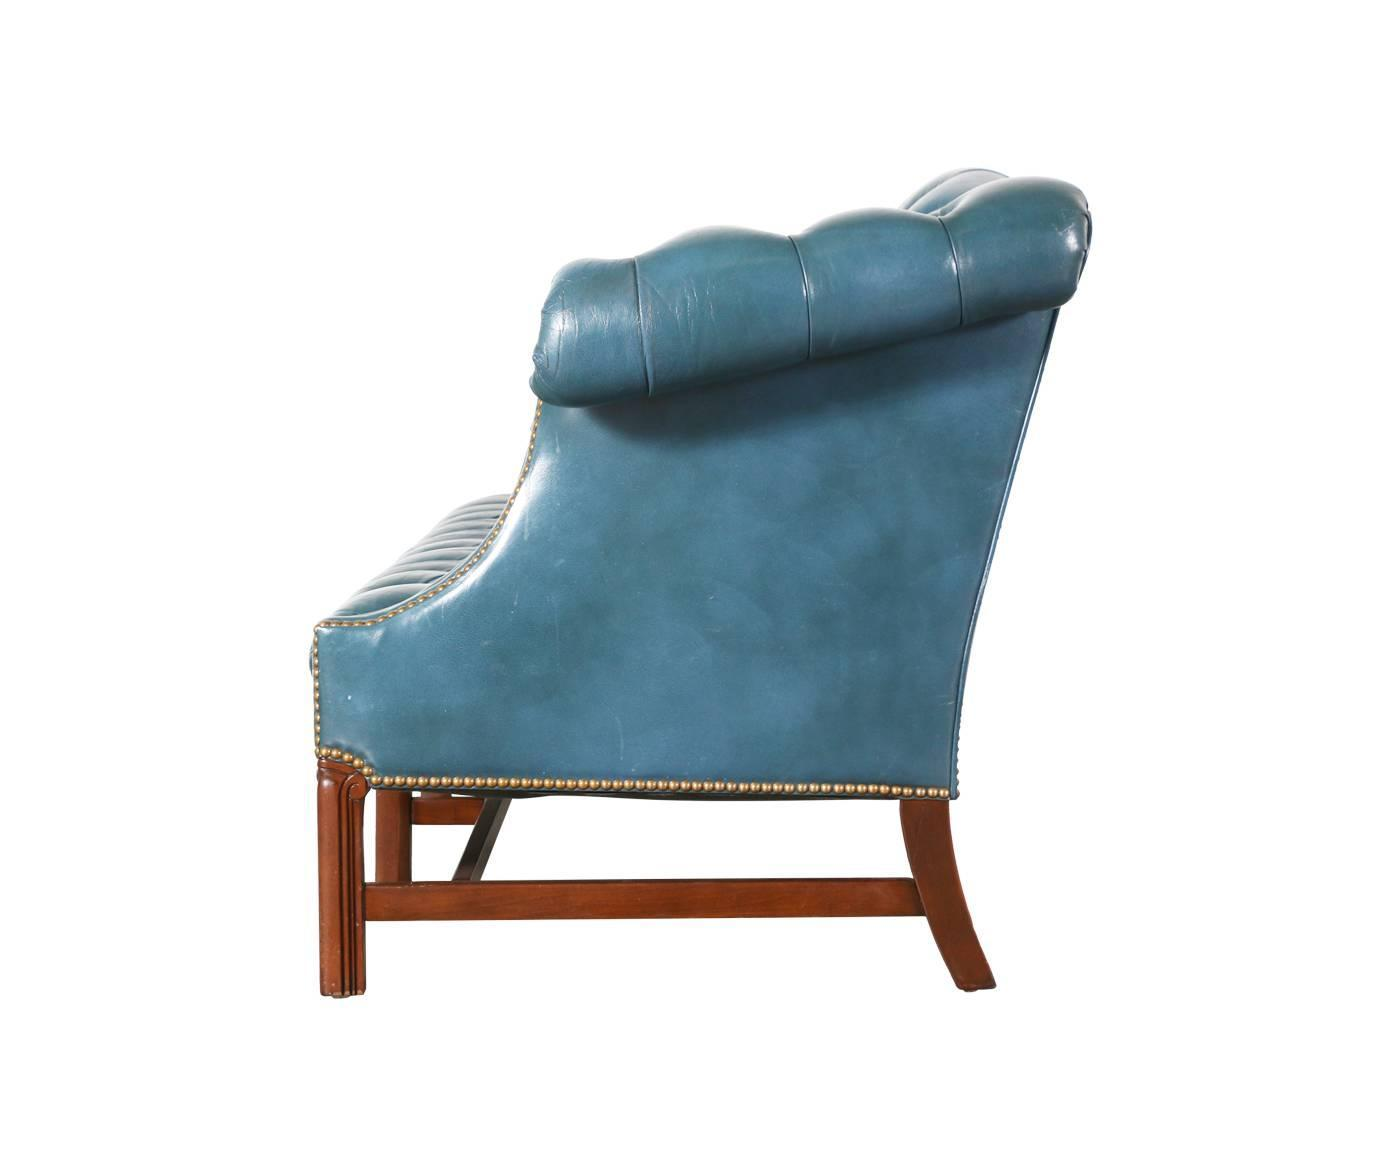 Vintage english leather teal blue chesterfield sofa for for Teal chairs for sale